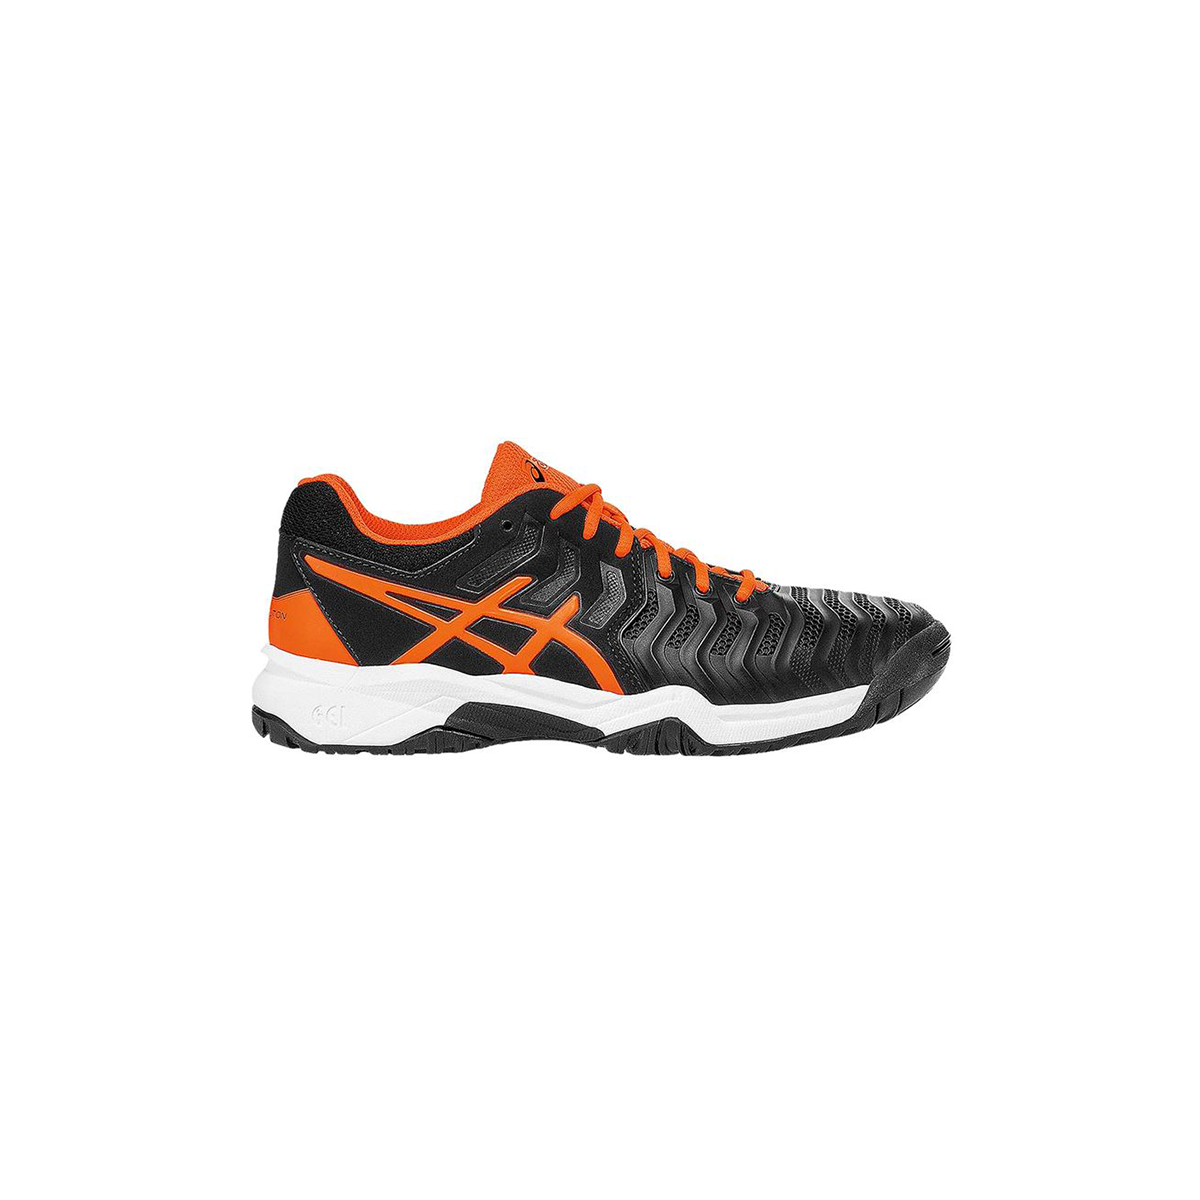 7 Unisex Asics Gs Scarpe 9030 C700y Da Resolution Tennis Gel Bambini 5IxT4PS